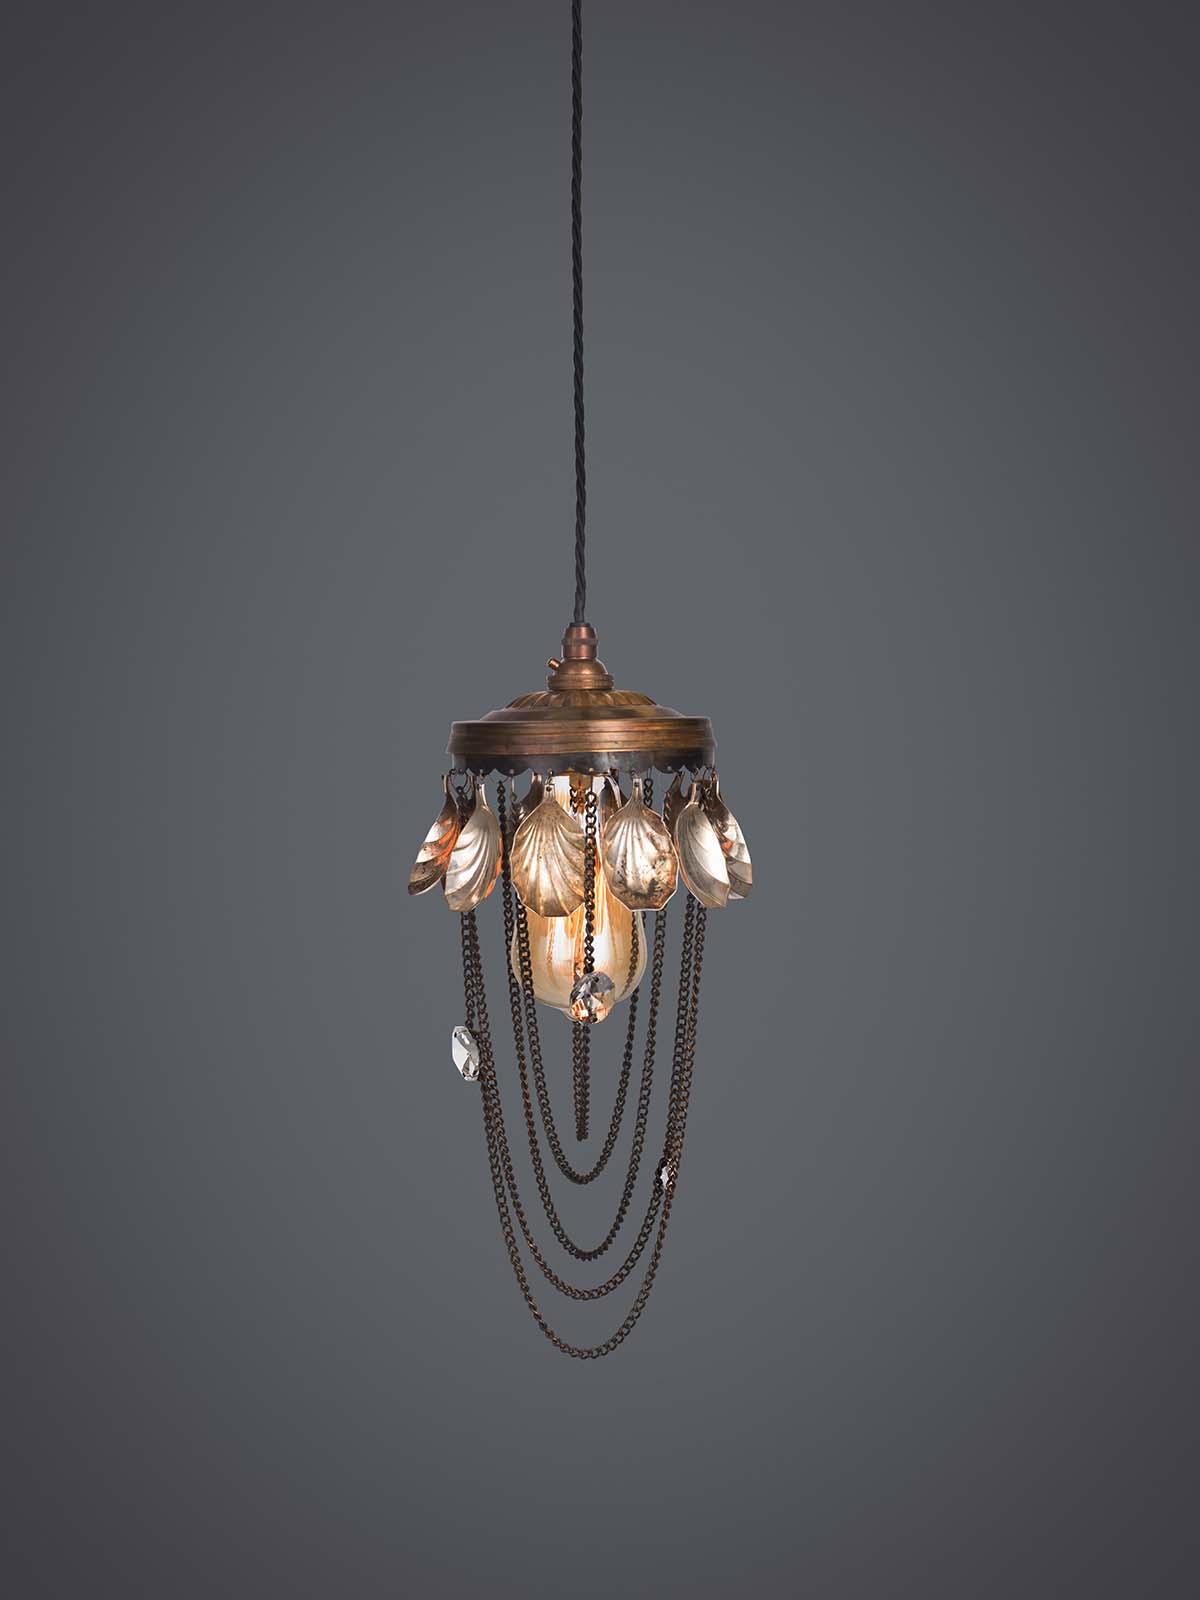 Ambrosia pendant lamp with fruit spoons.